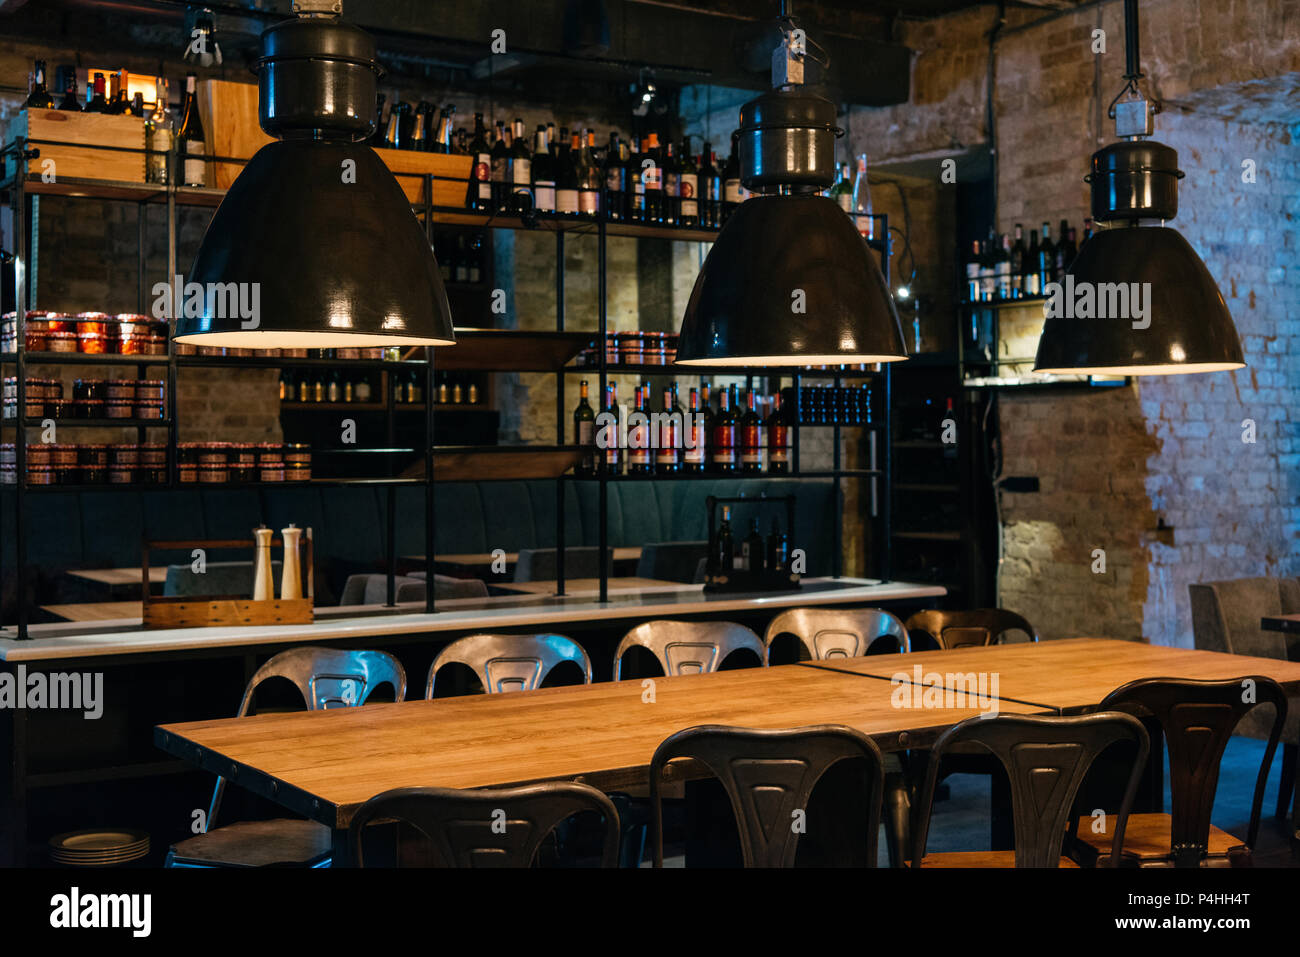 Wooden Tables Lamps And Bar Counter In Modern Restaurant Stock Photo Alamy